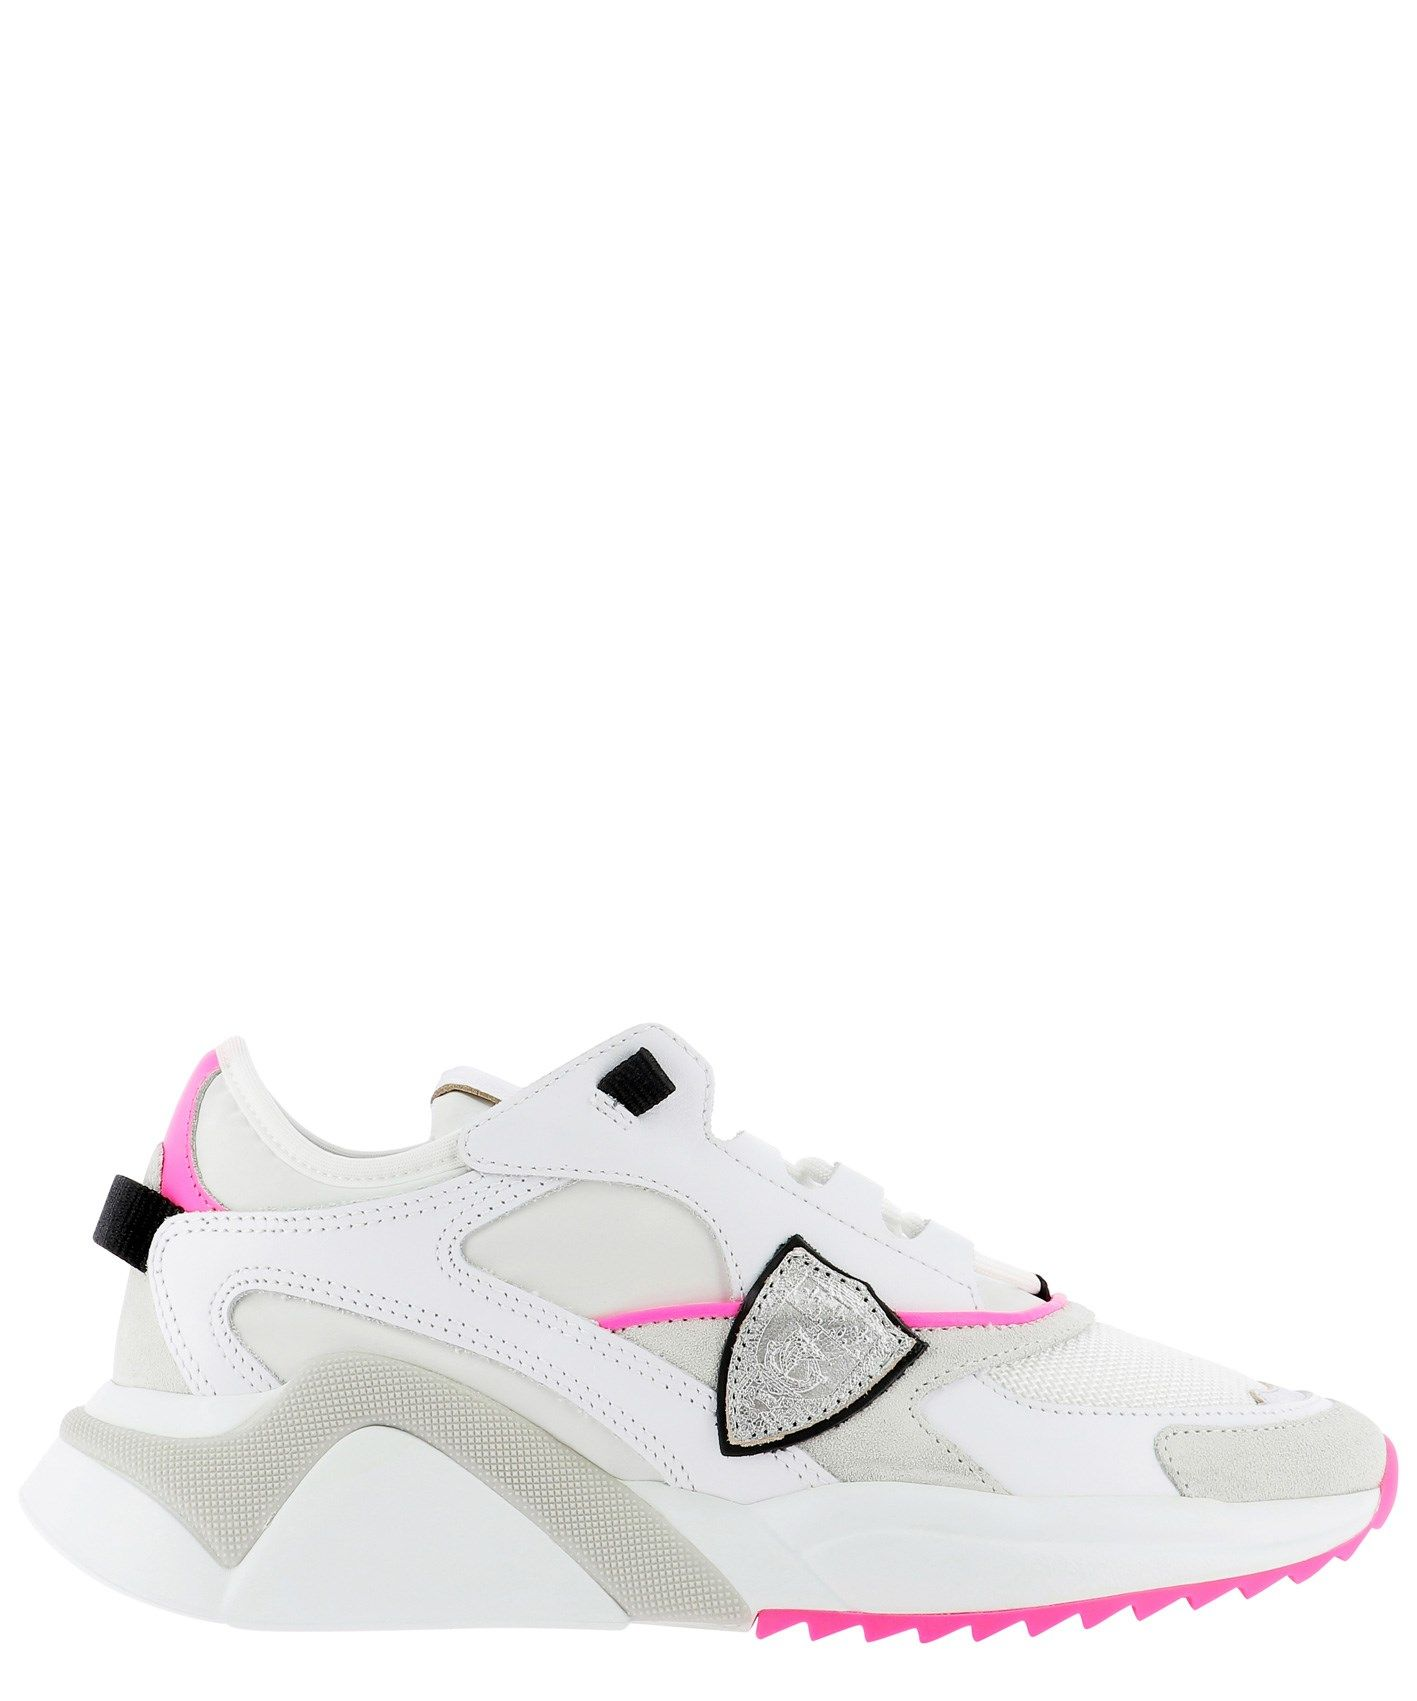 Philippe Model PHILIPPE MODEL WOMEN'S EZLDWF06 WHITE OTHER MATERIALS SNEAKERS